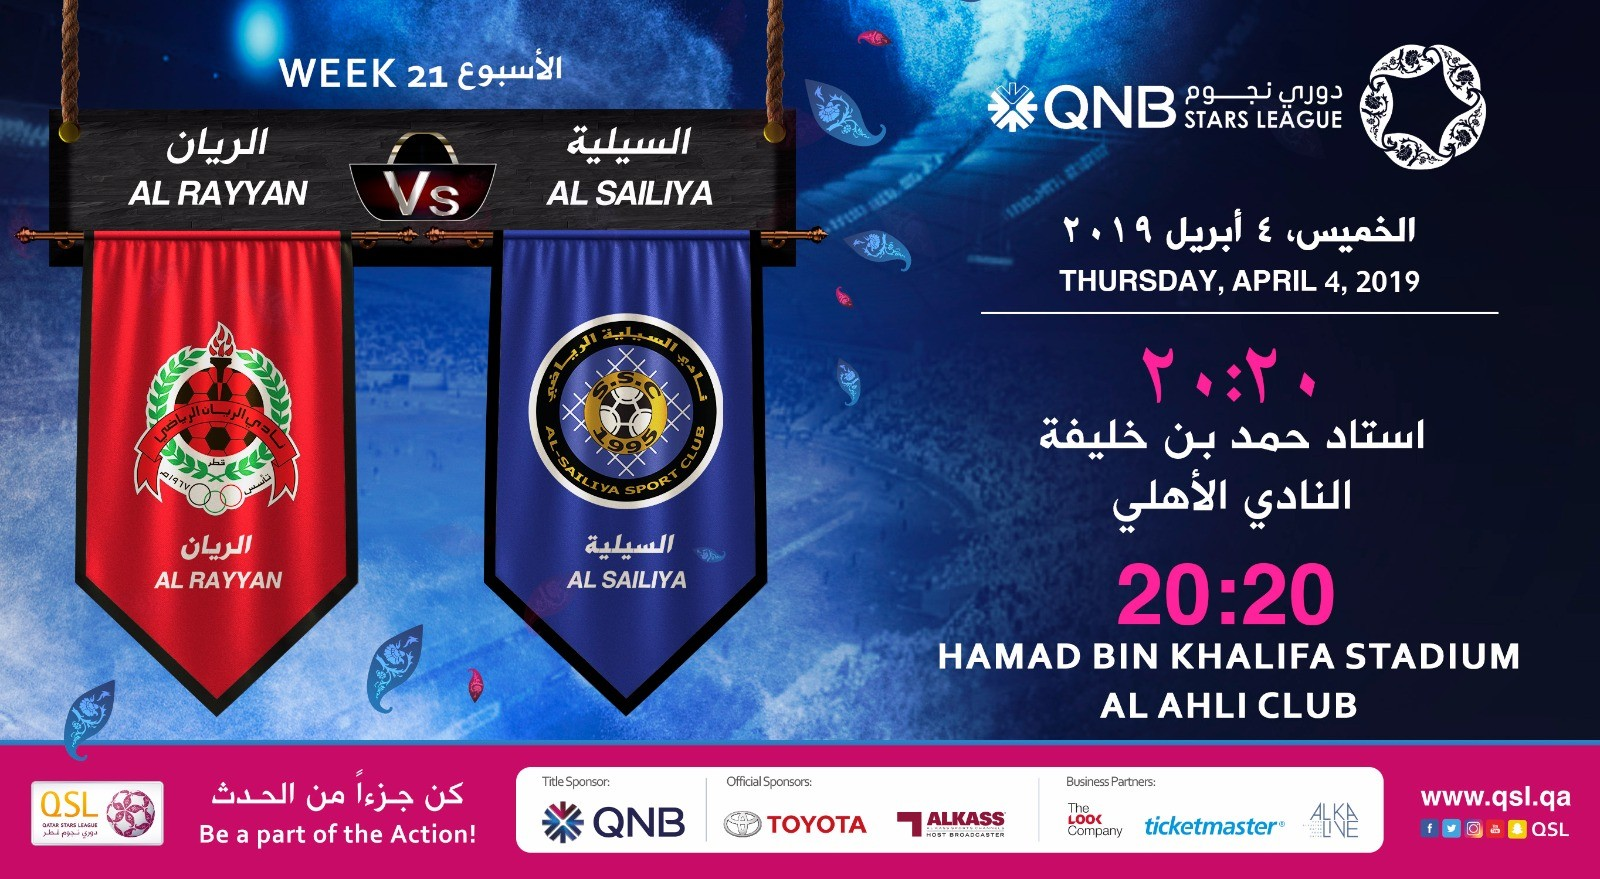 QNB Stars League Week 21 — Al Rayyan vs Al Sailiya